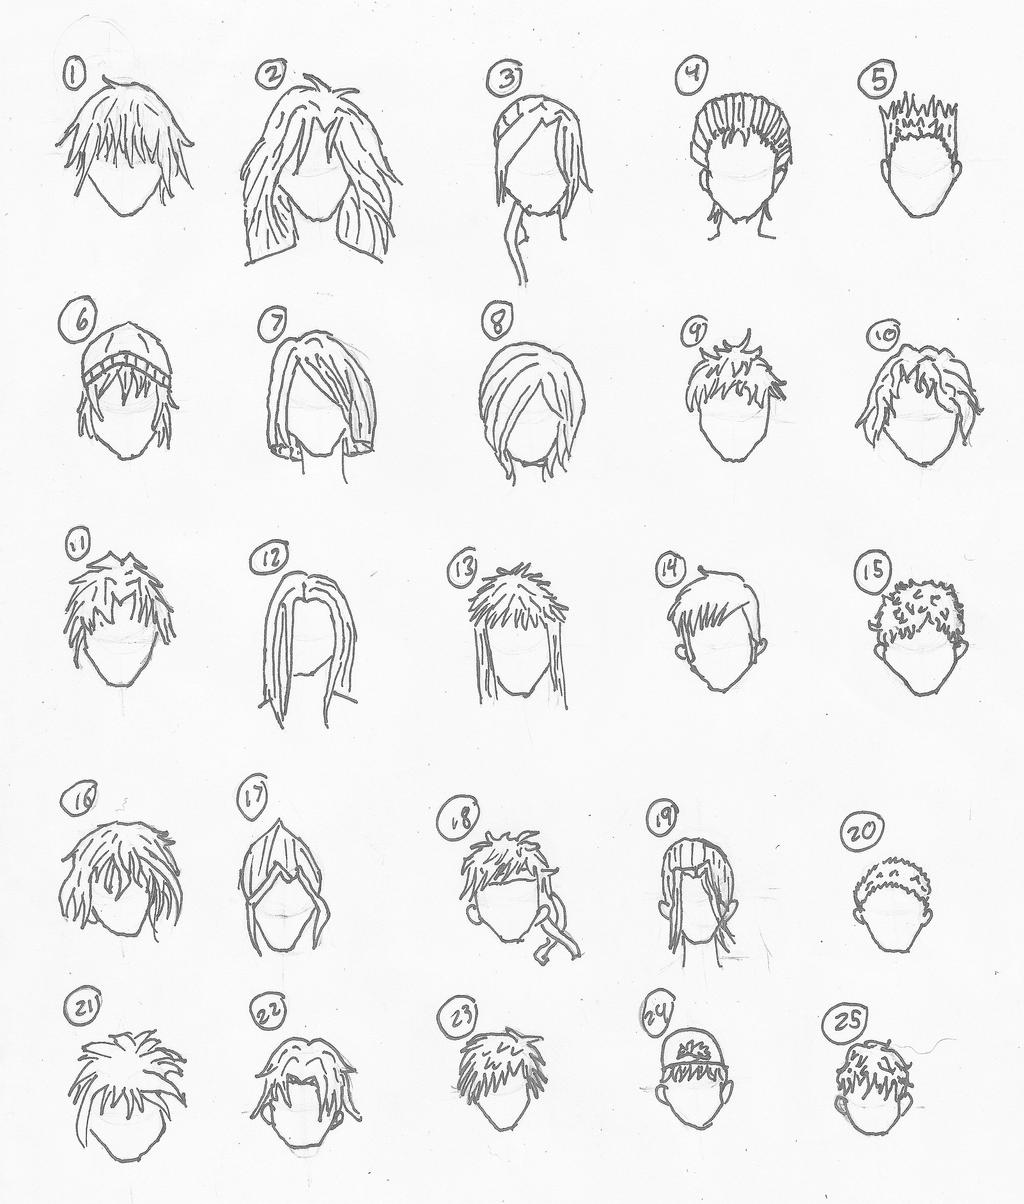 568227677965906938 furthermore Fc09 deviantart additionally Anime Hairstyles Guys besides Fade Haircut Techniques further How To Apply Smokey Eye Makeup Tips Step By Step 3. on medium length curly hairstyles